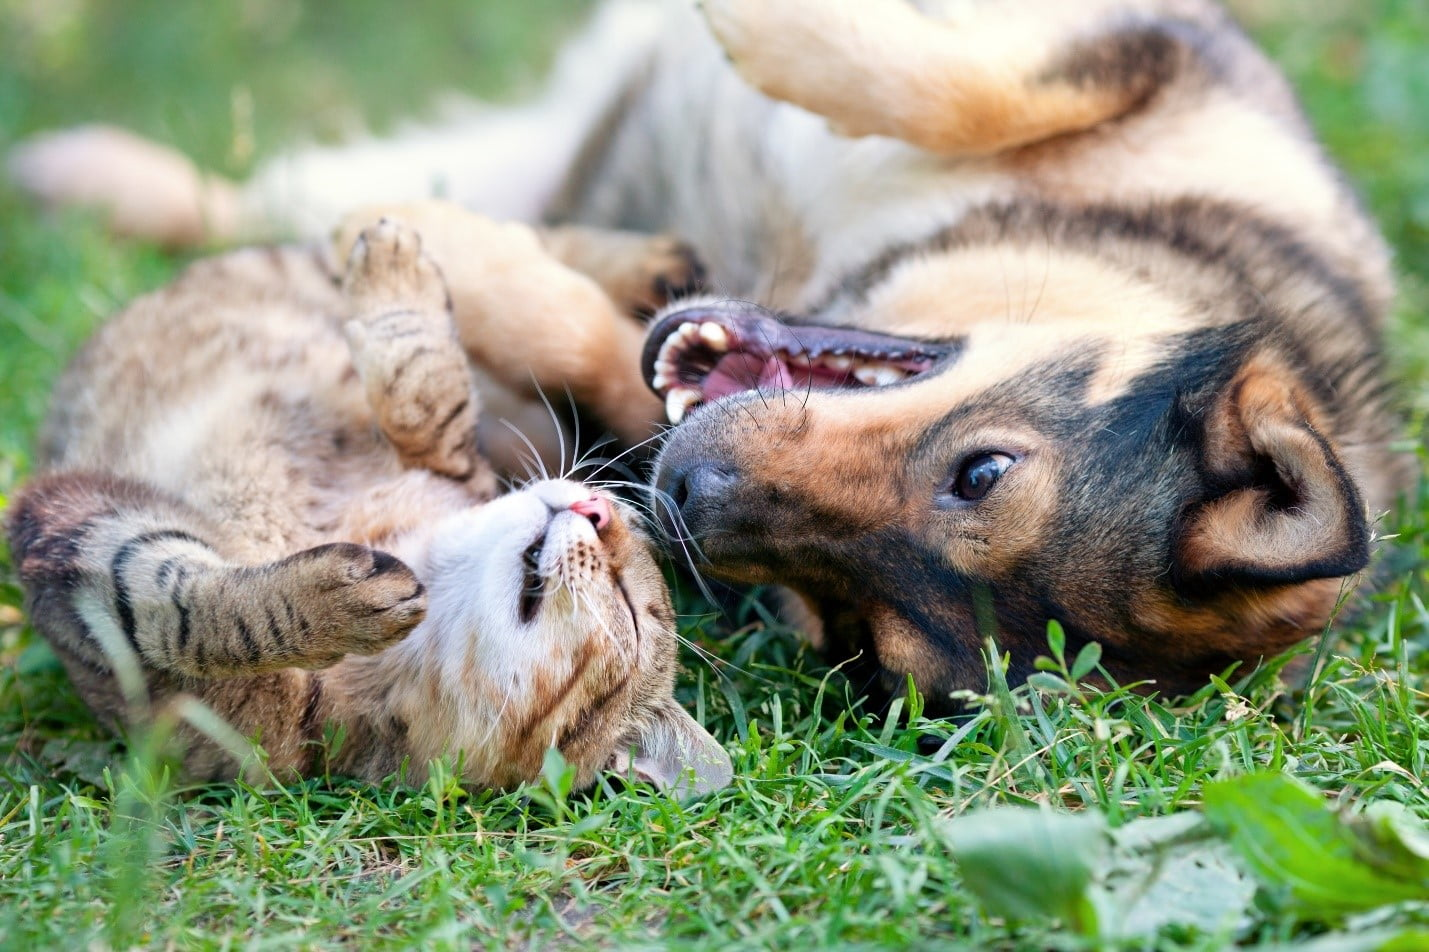 cat and dog playing in spring grass, healthy and smiling